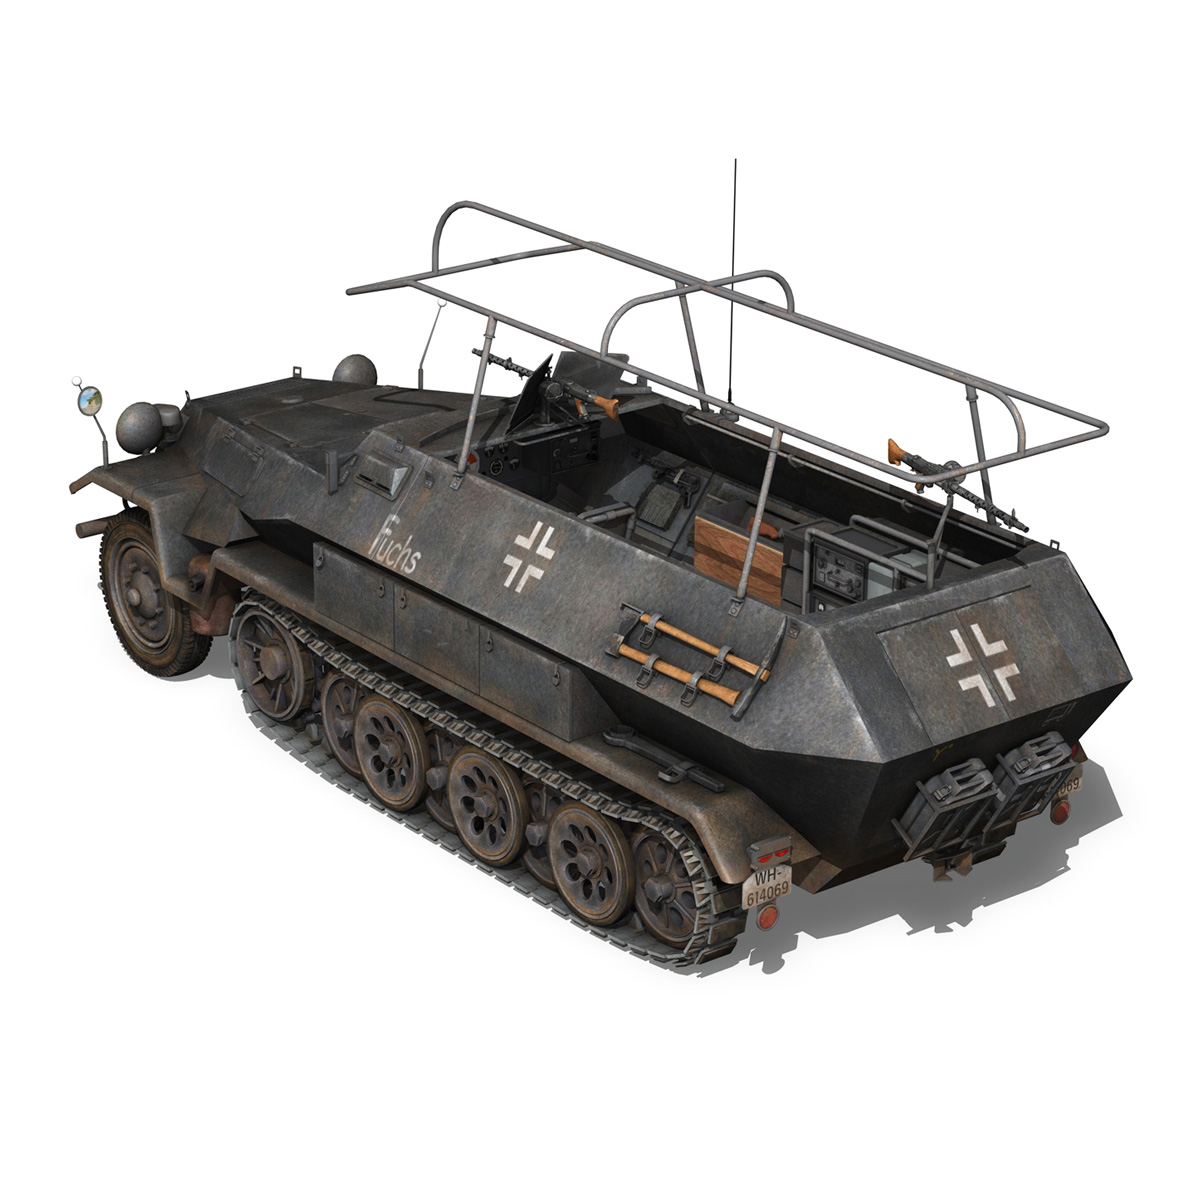 sd.kfz 251 ausf b – communications vehicle – 8pd 3d model 3ds fbx lwo lw lws obj c4d 292028